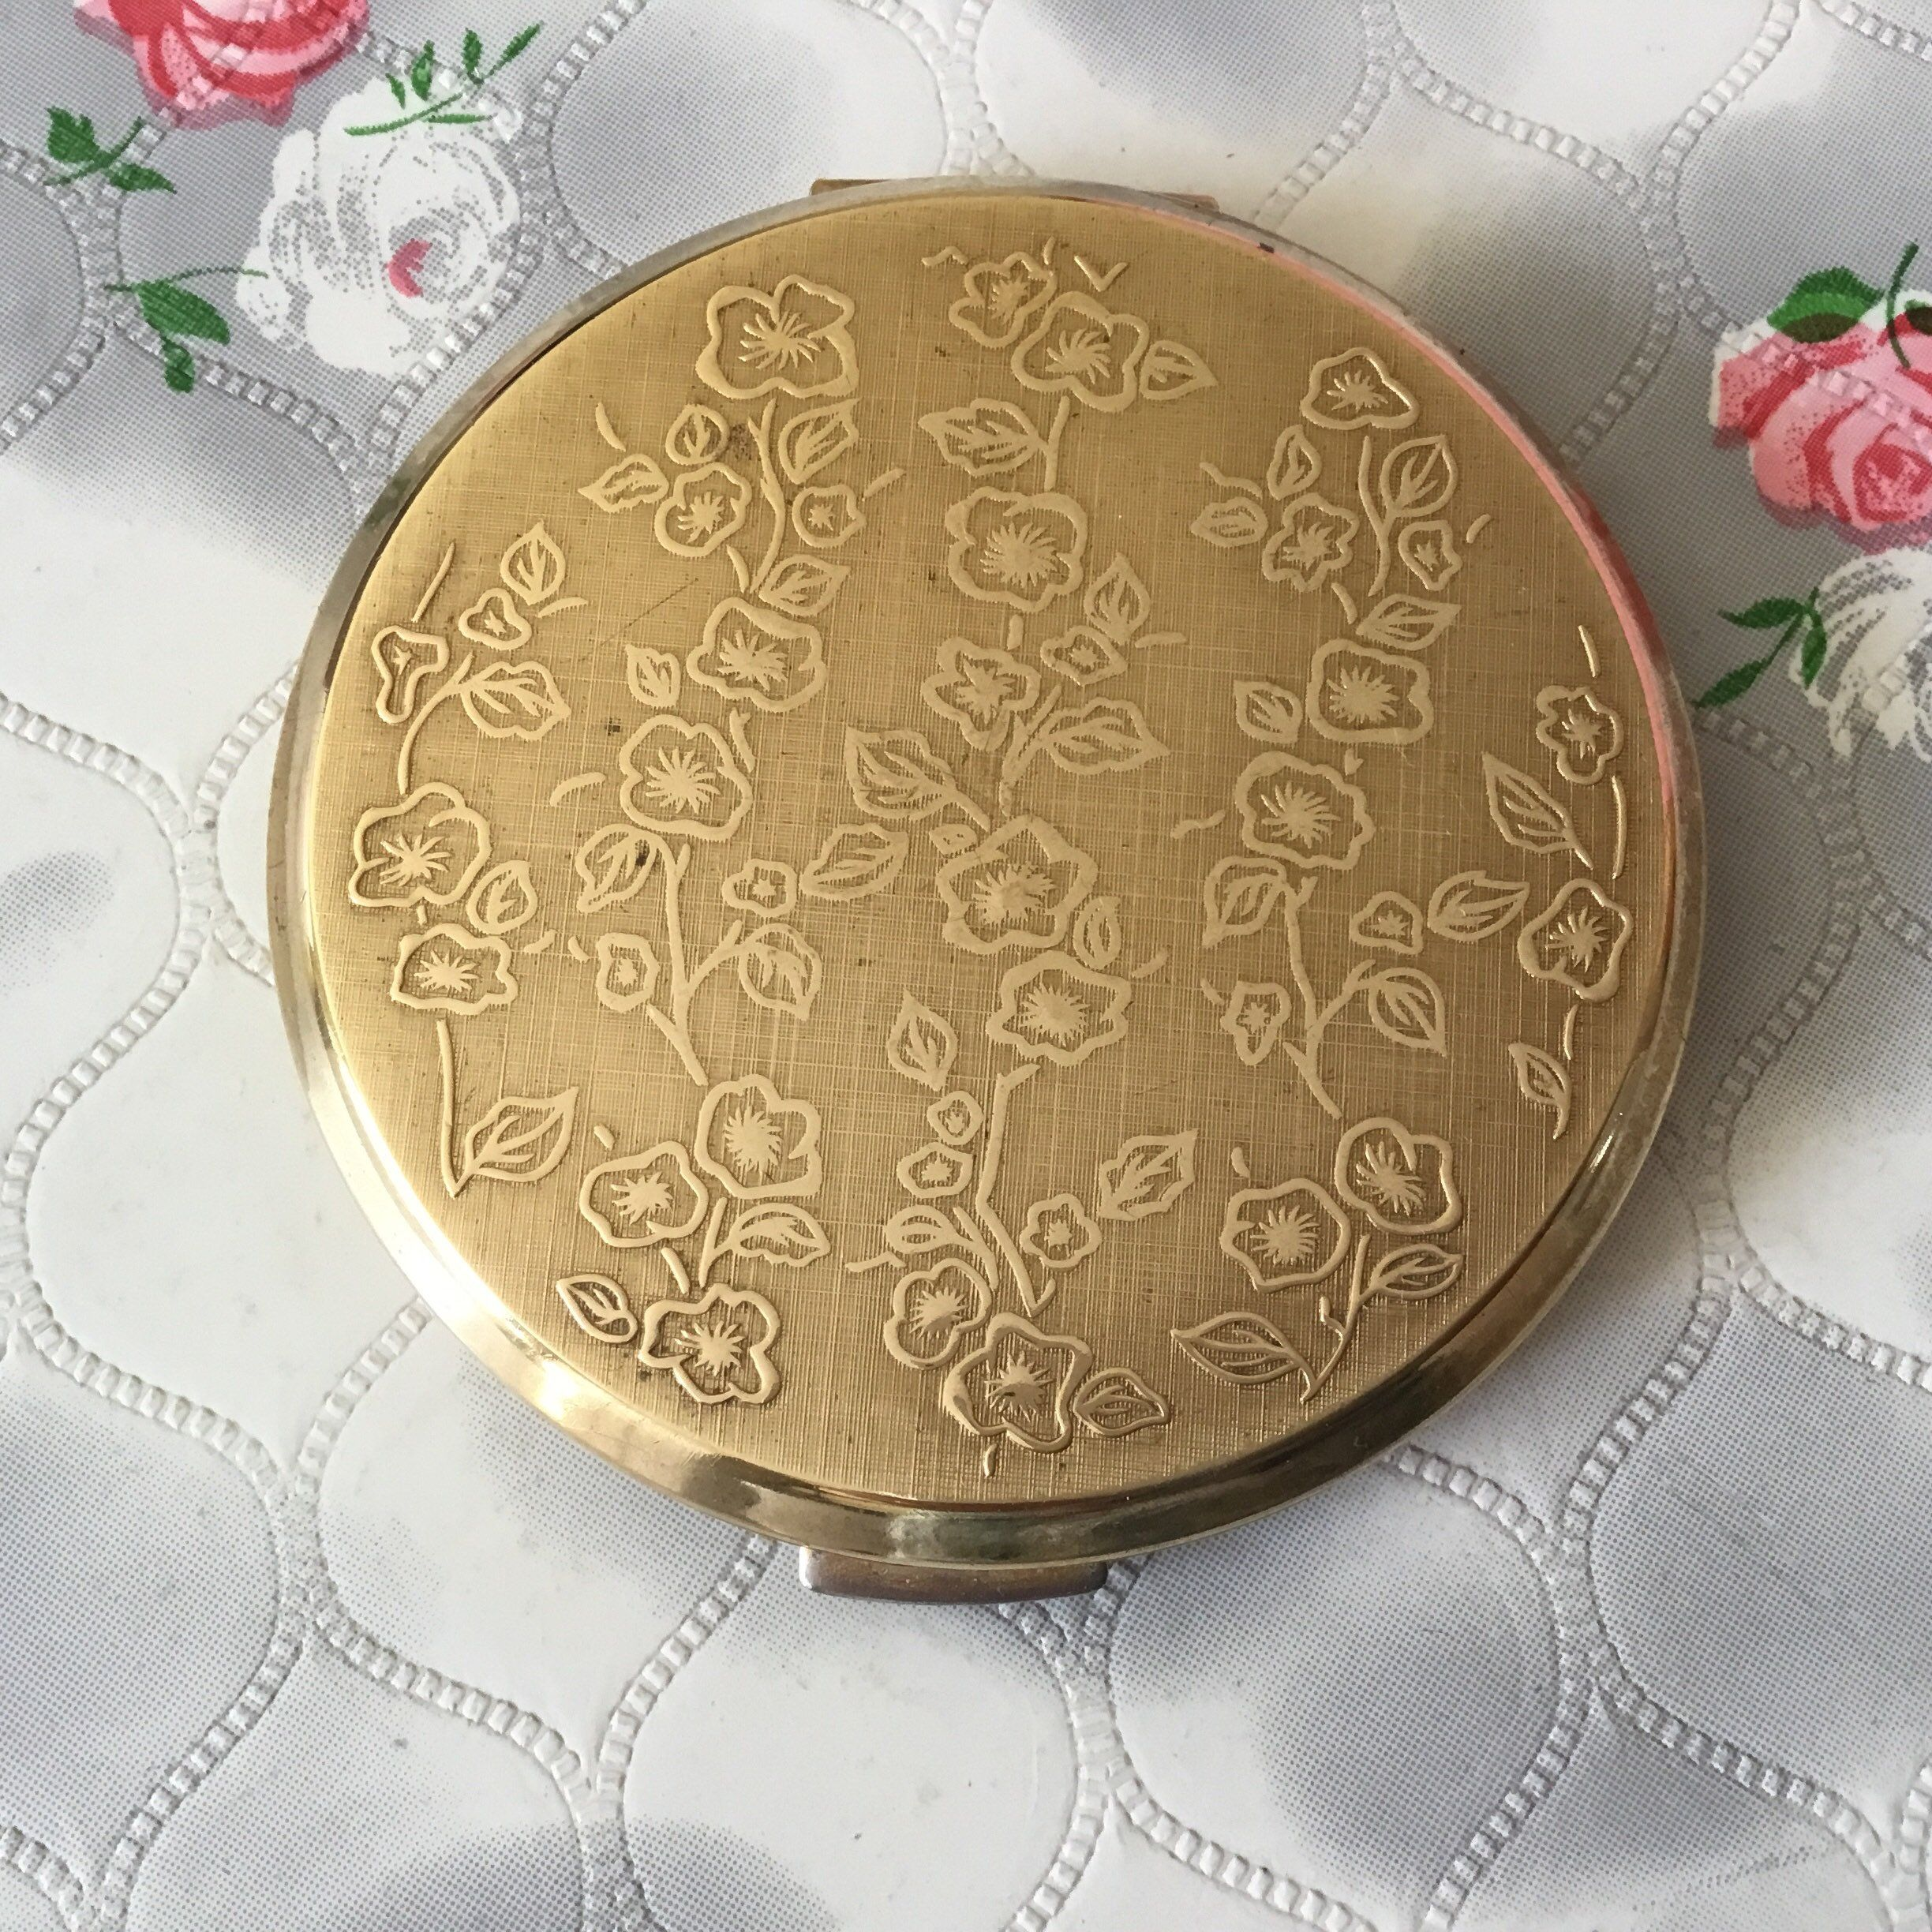 Vintage Compact Collectibles Powder Compact Vintage Stratton Makeup Compact Case with Mirror Roses and Star Pattern Made in England USED